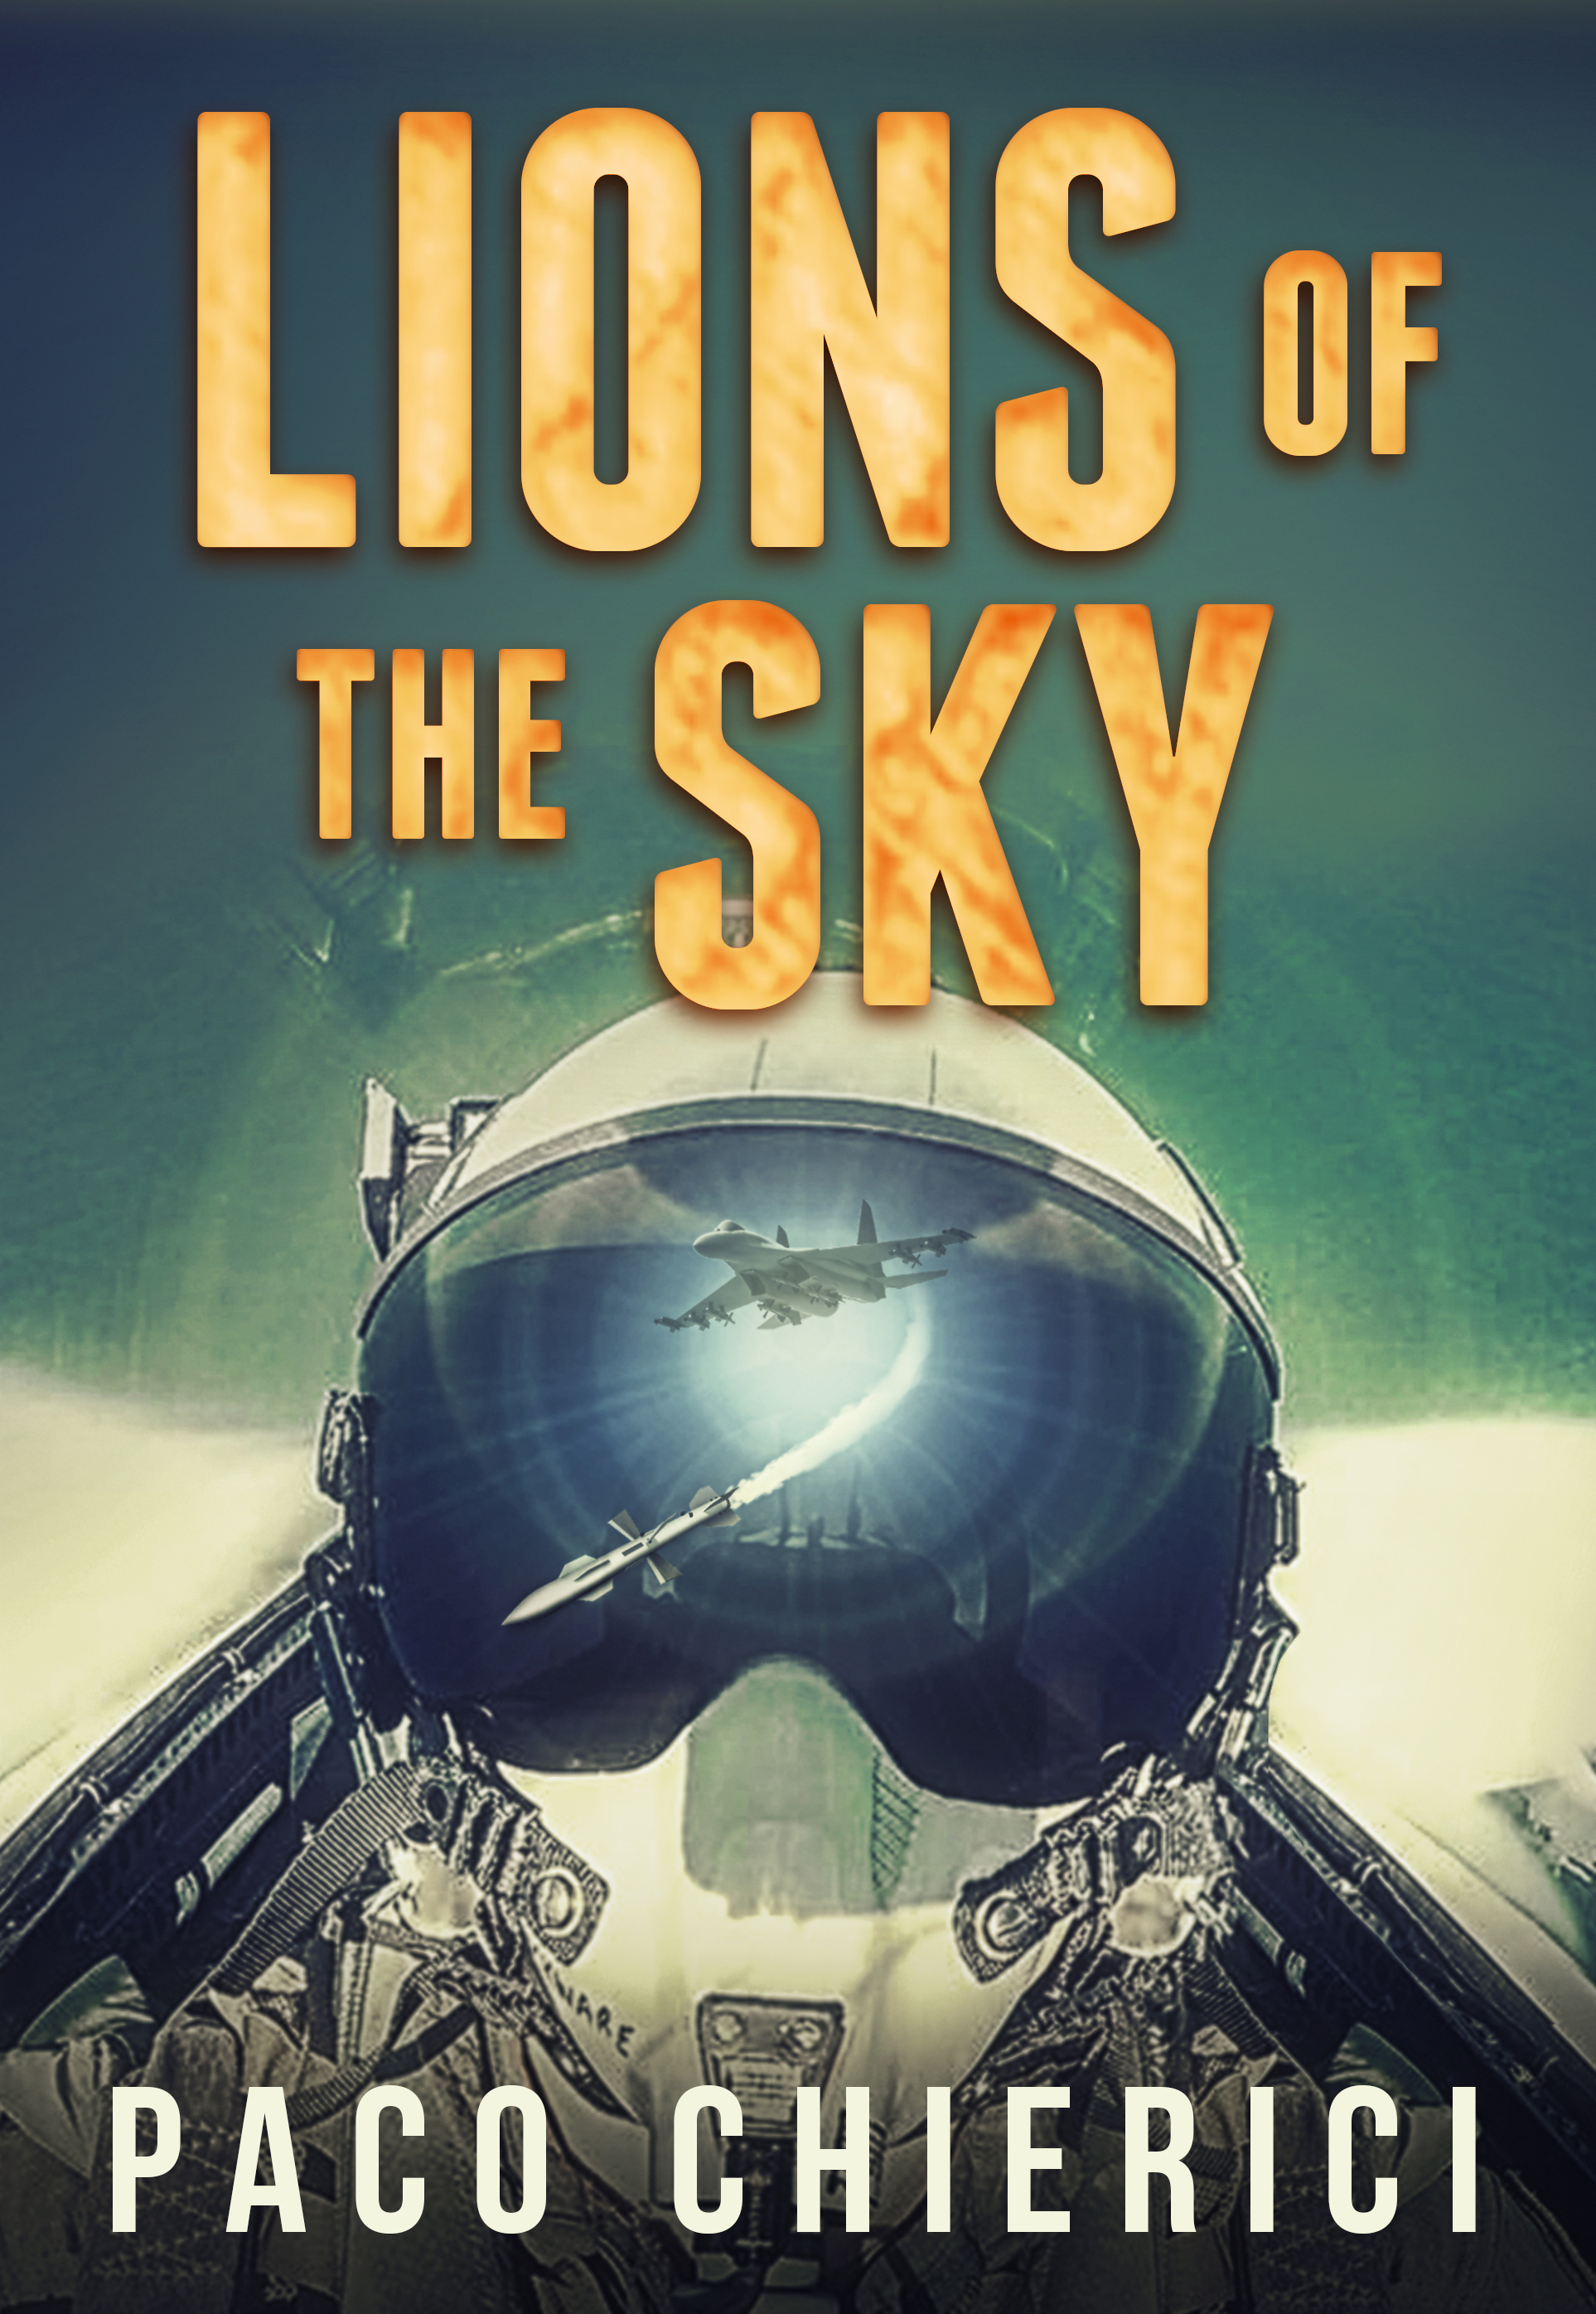 Lions of the Sky_front.JPG